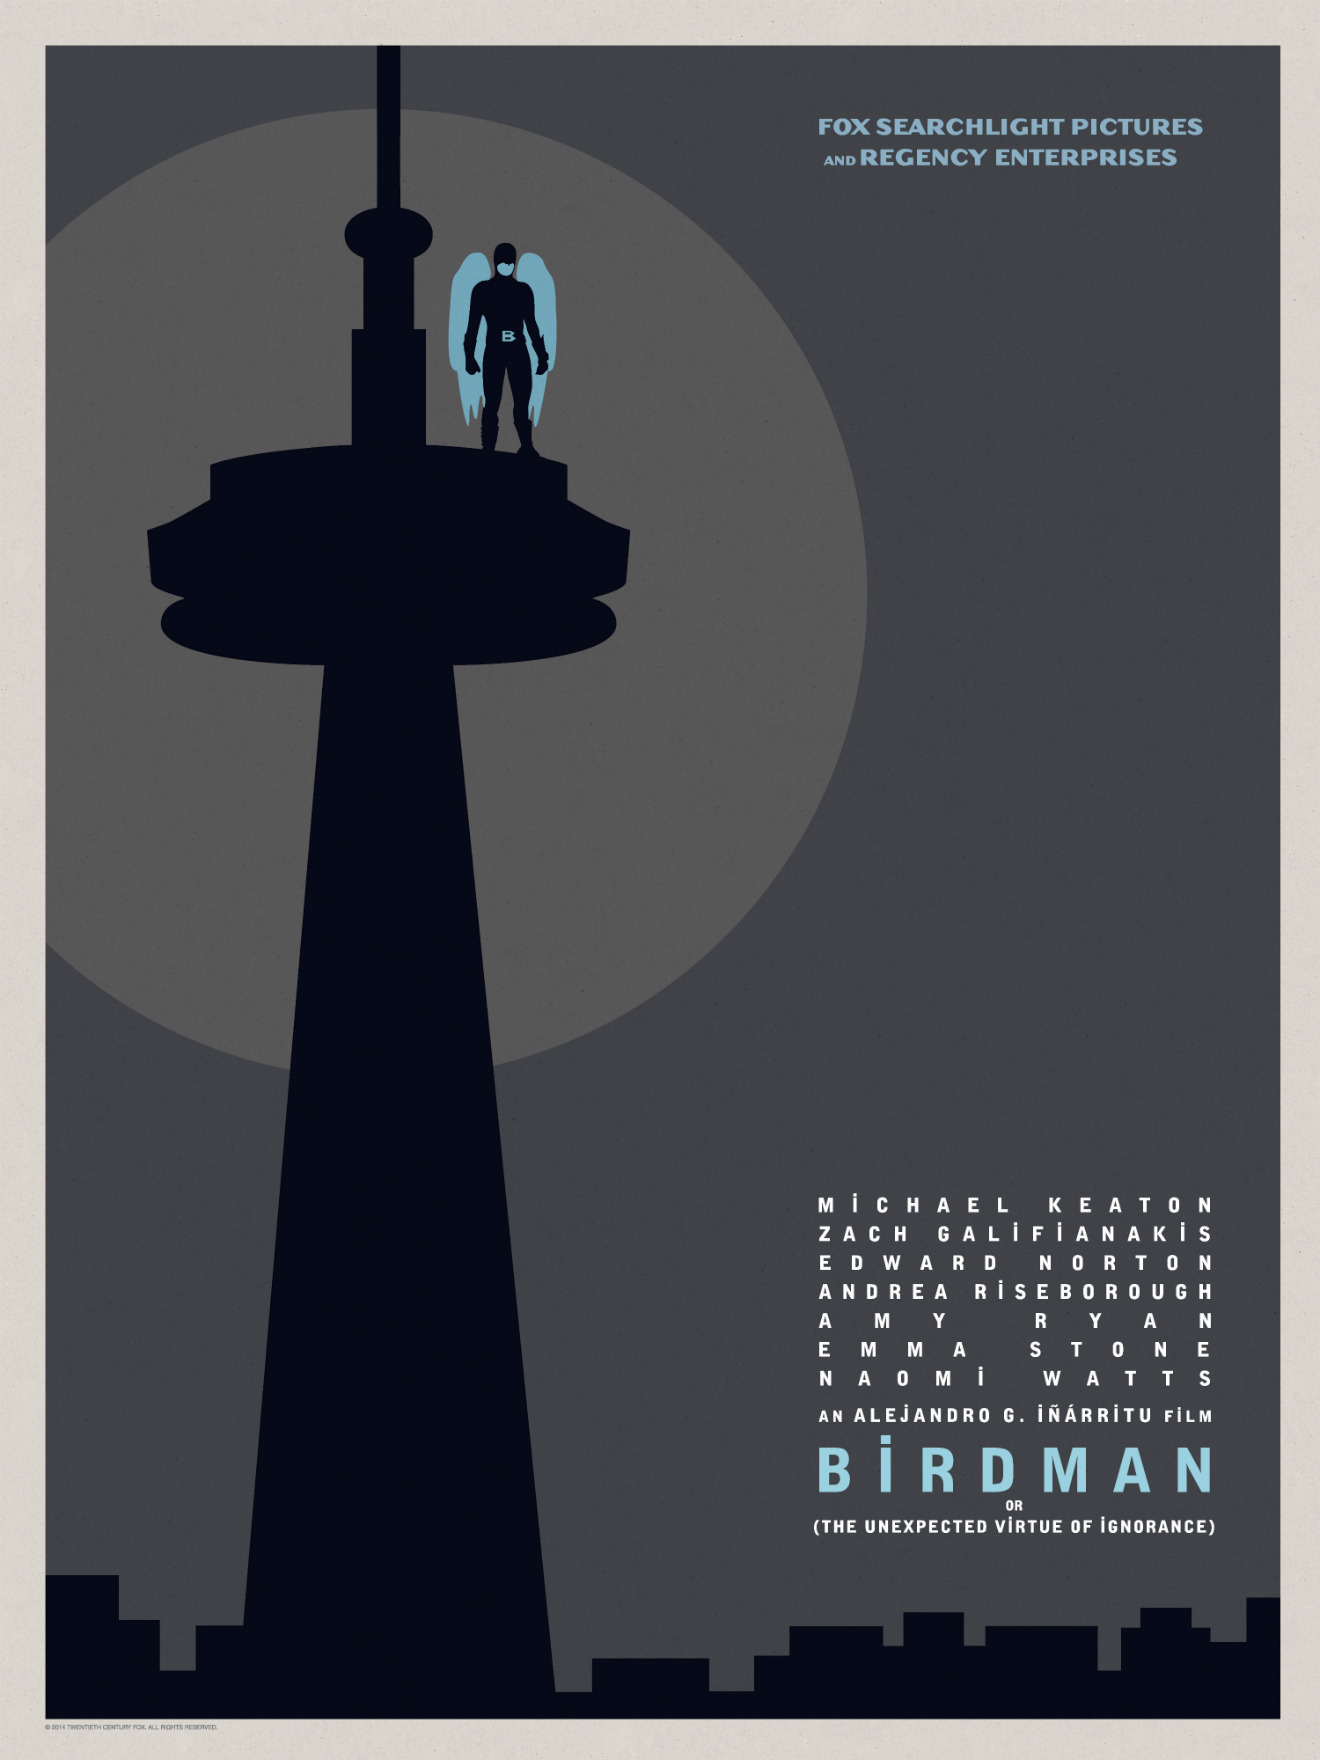 Birdman-Official Poster Minimalist XLG-13OUTUBRO2014-09